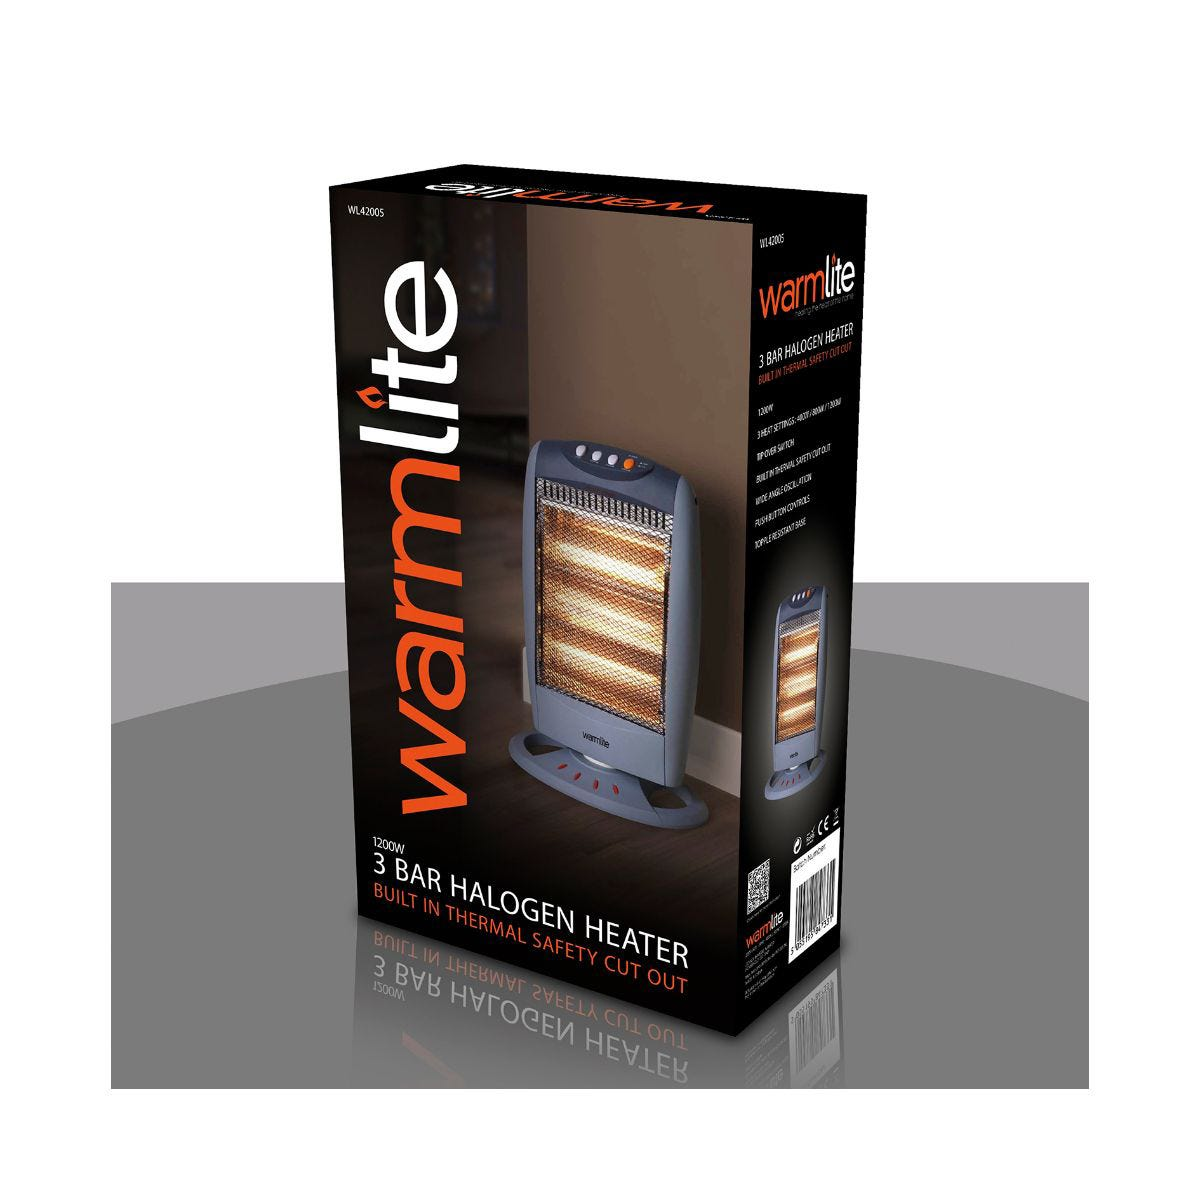 Image of 1200w Halogen Heater, Grey